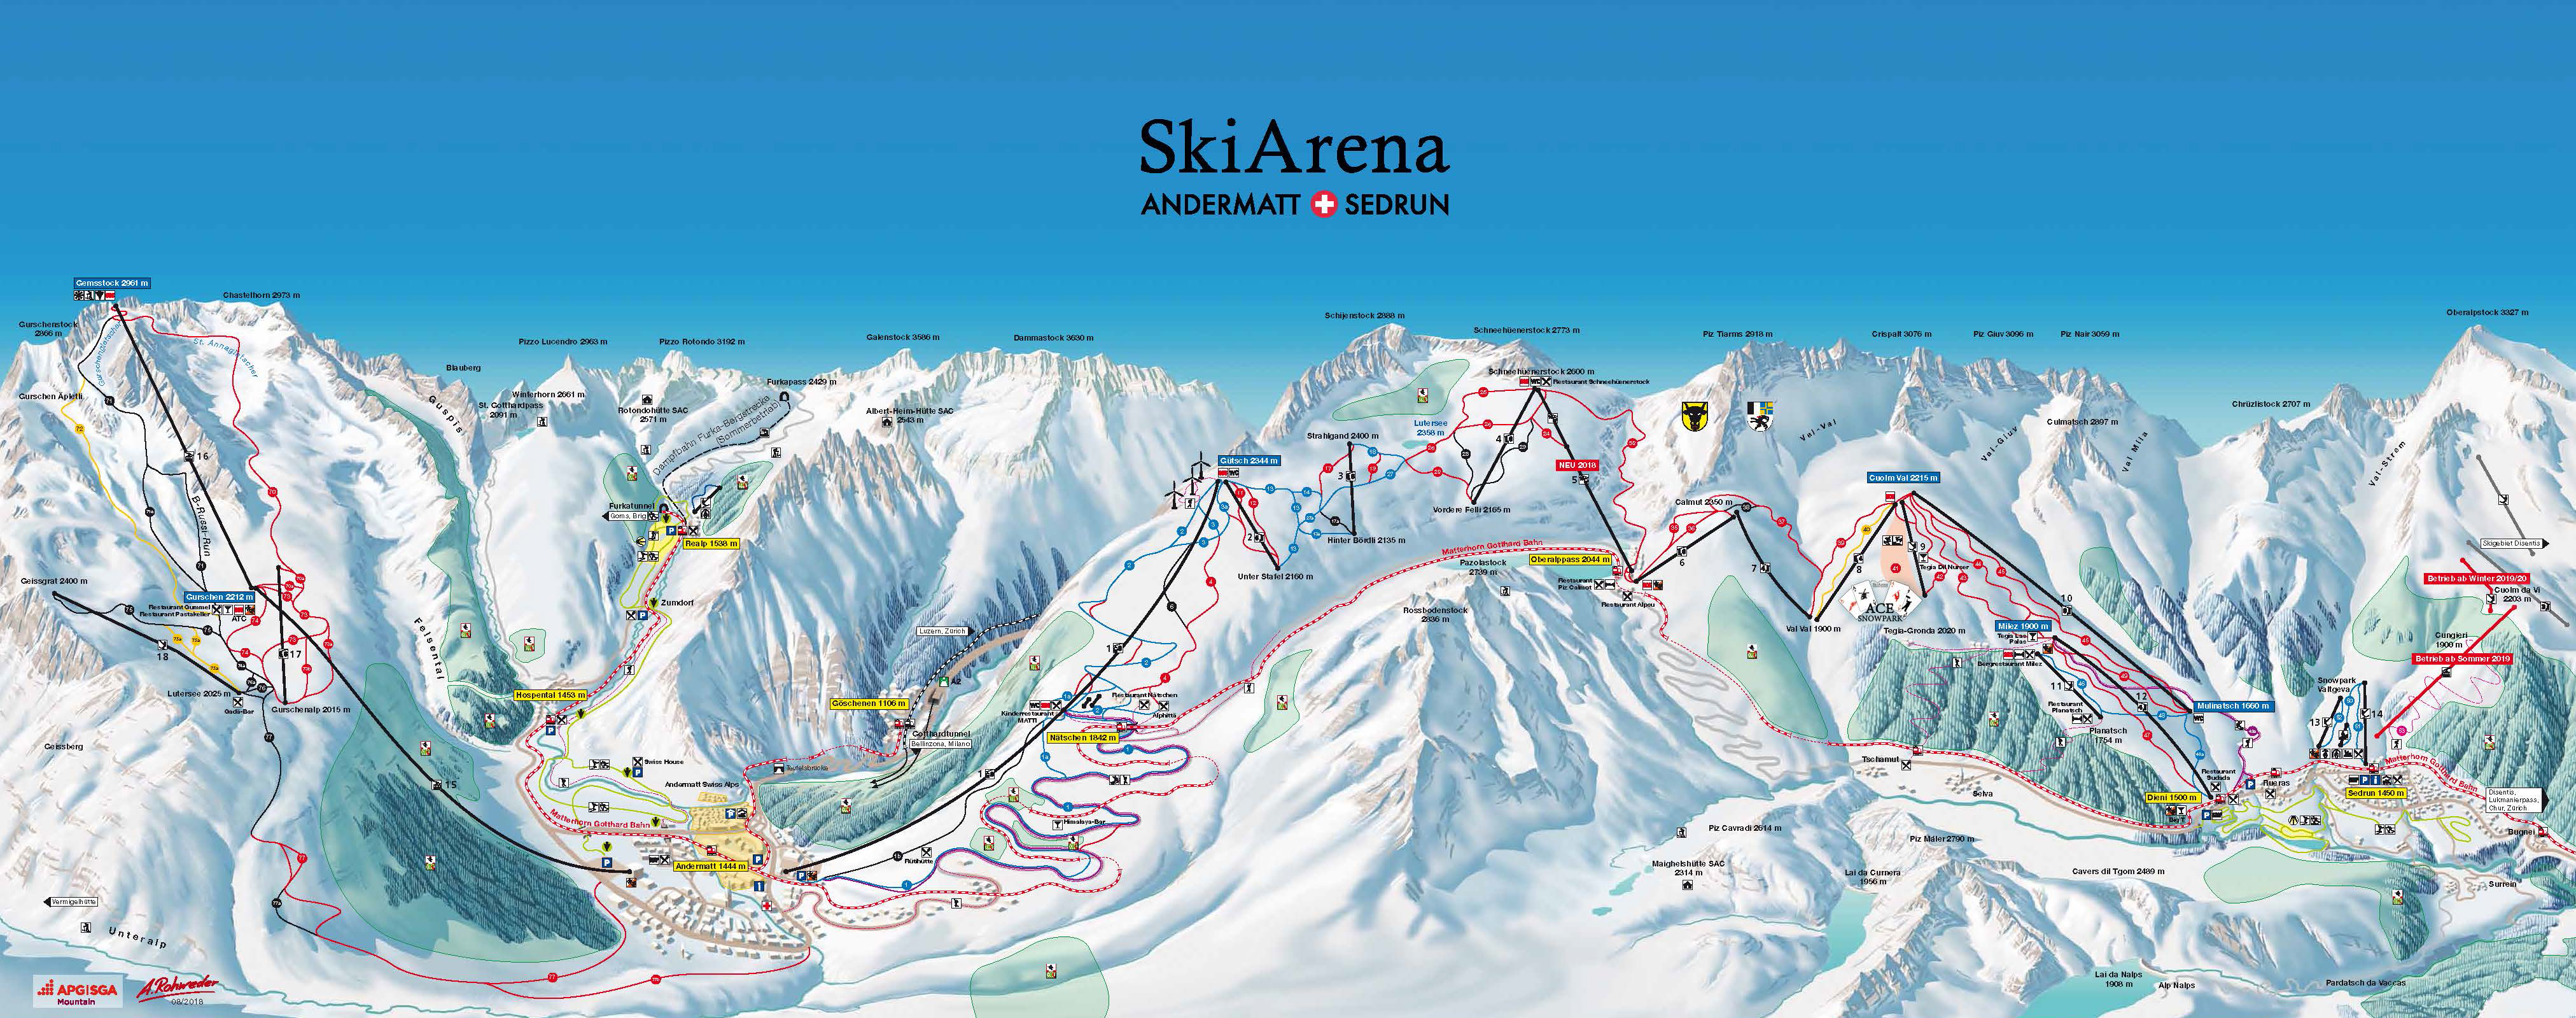 Skiarena Andermatt-Sedrun-Disentis | Pistes | Slopes | Lifts | Map